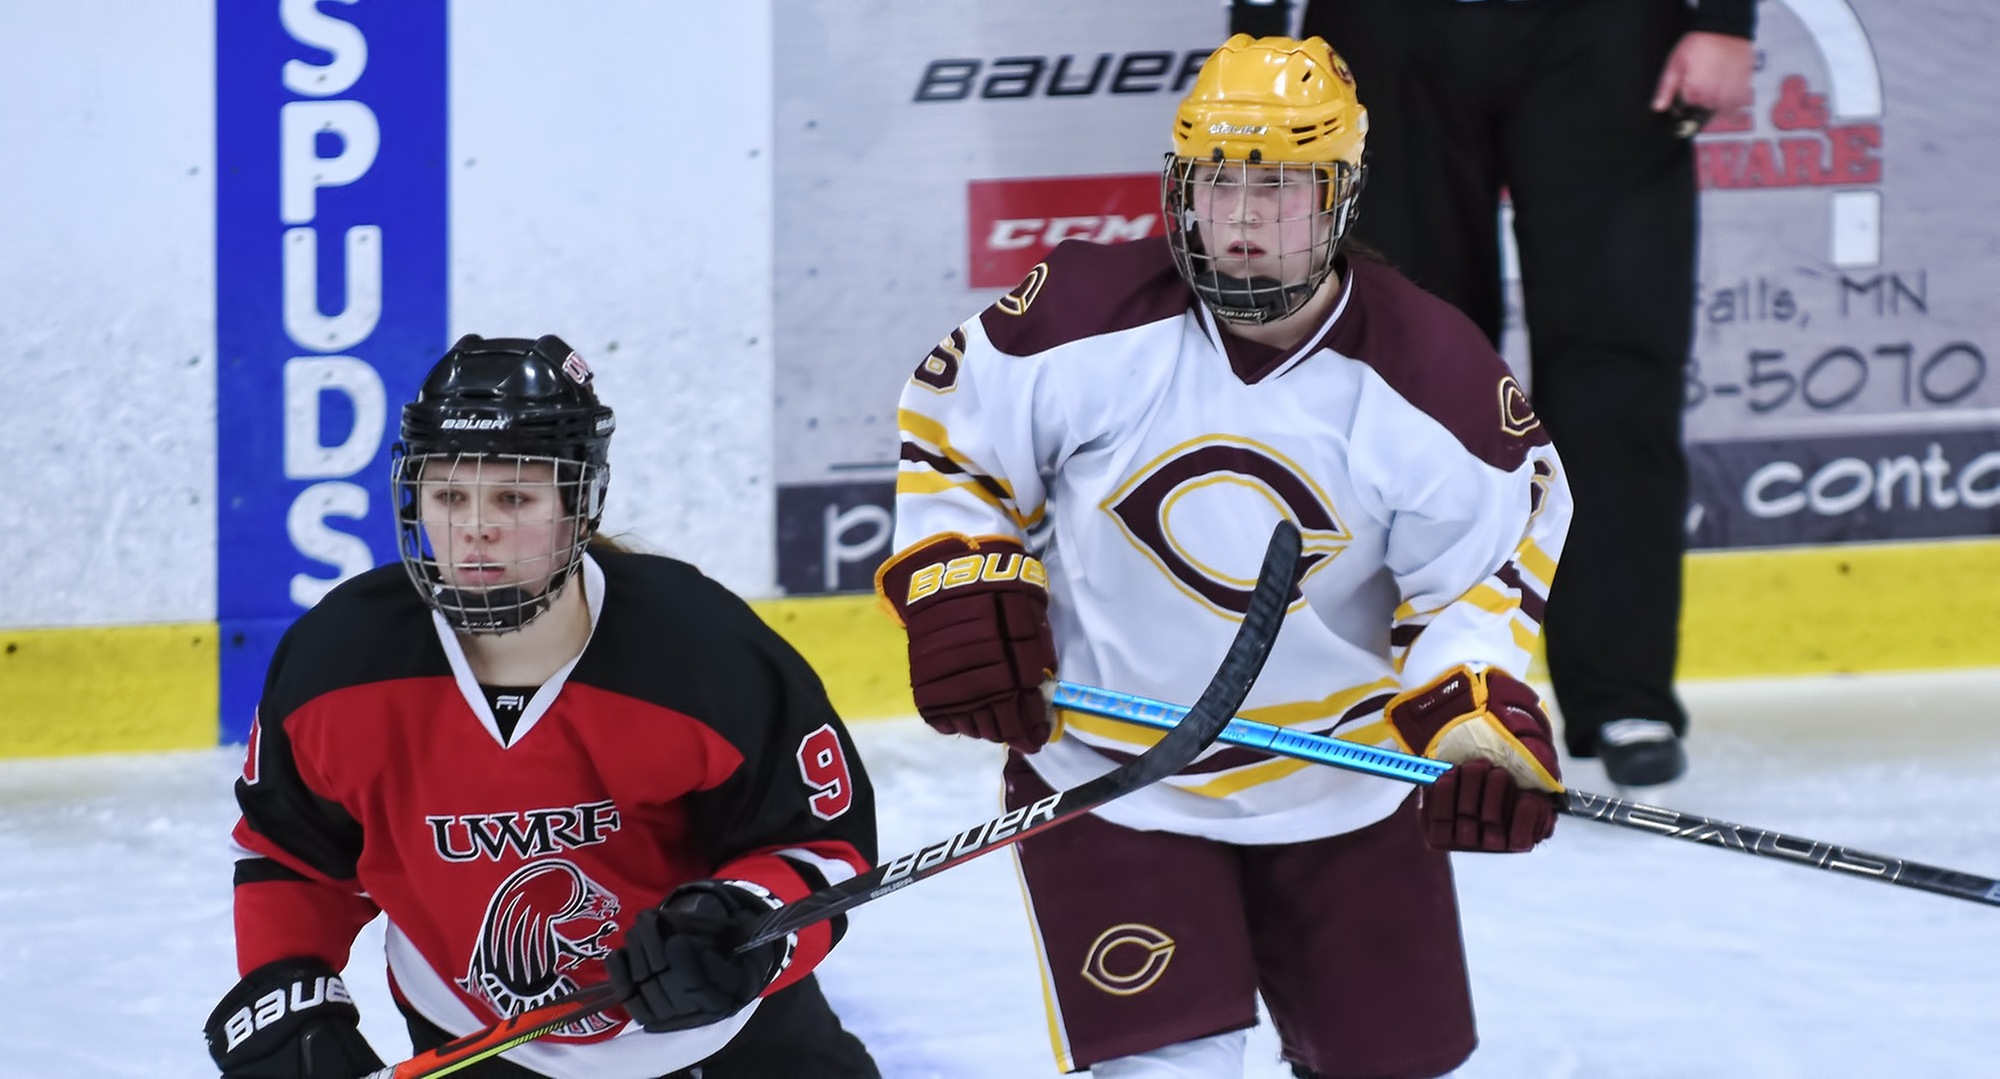 Sophomore Hannah Christian scored her first collegiate goal in the Cobbers' series finale with #7 Wis.-River Falls.